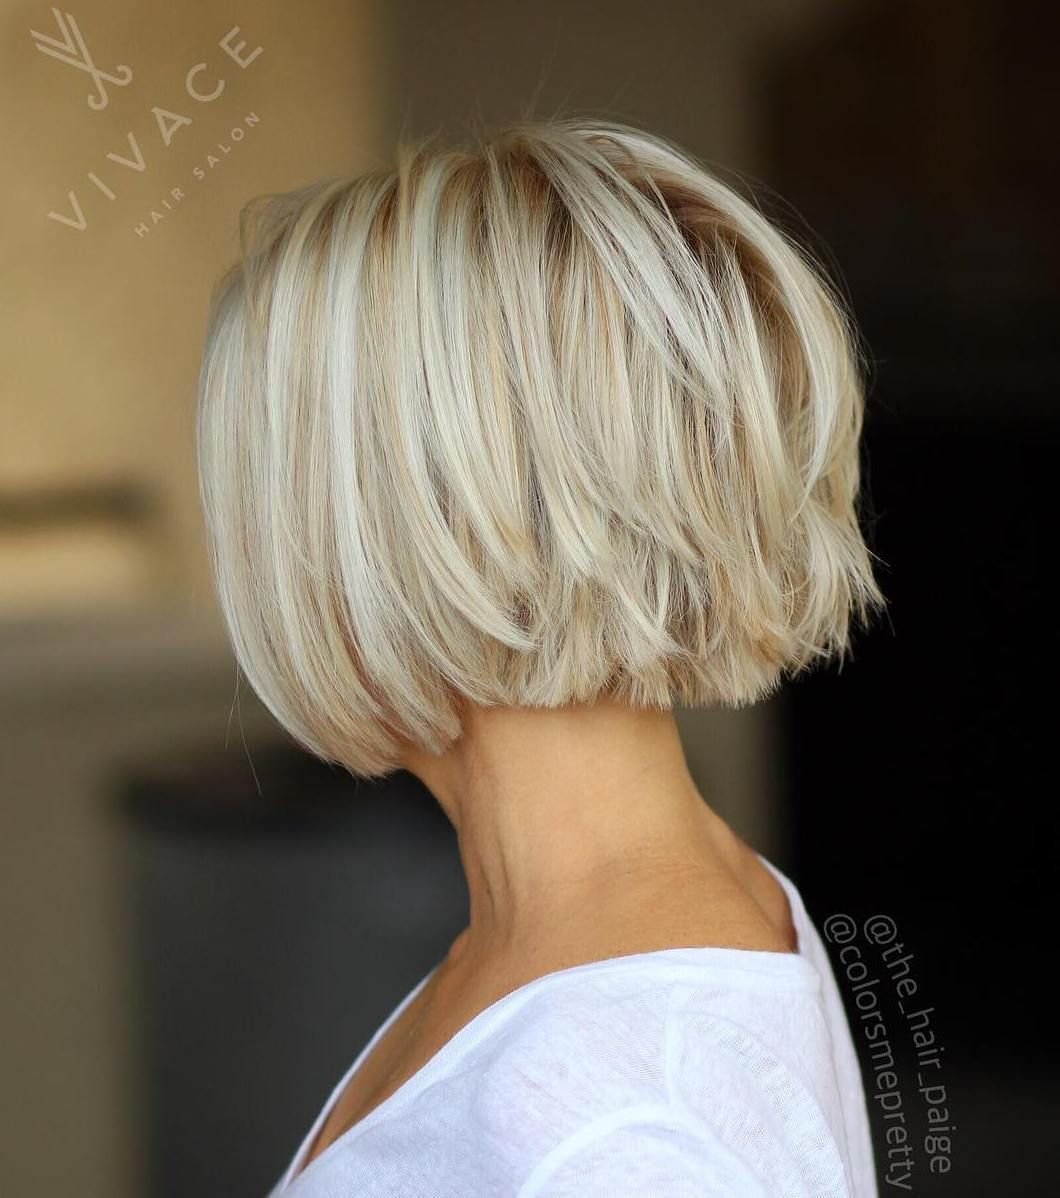 100 Mind-Blowing Short Hairstyles for Fine Hair #skincareroutine